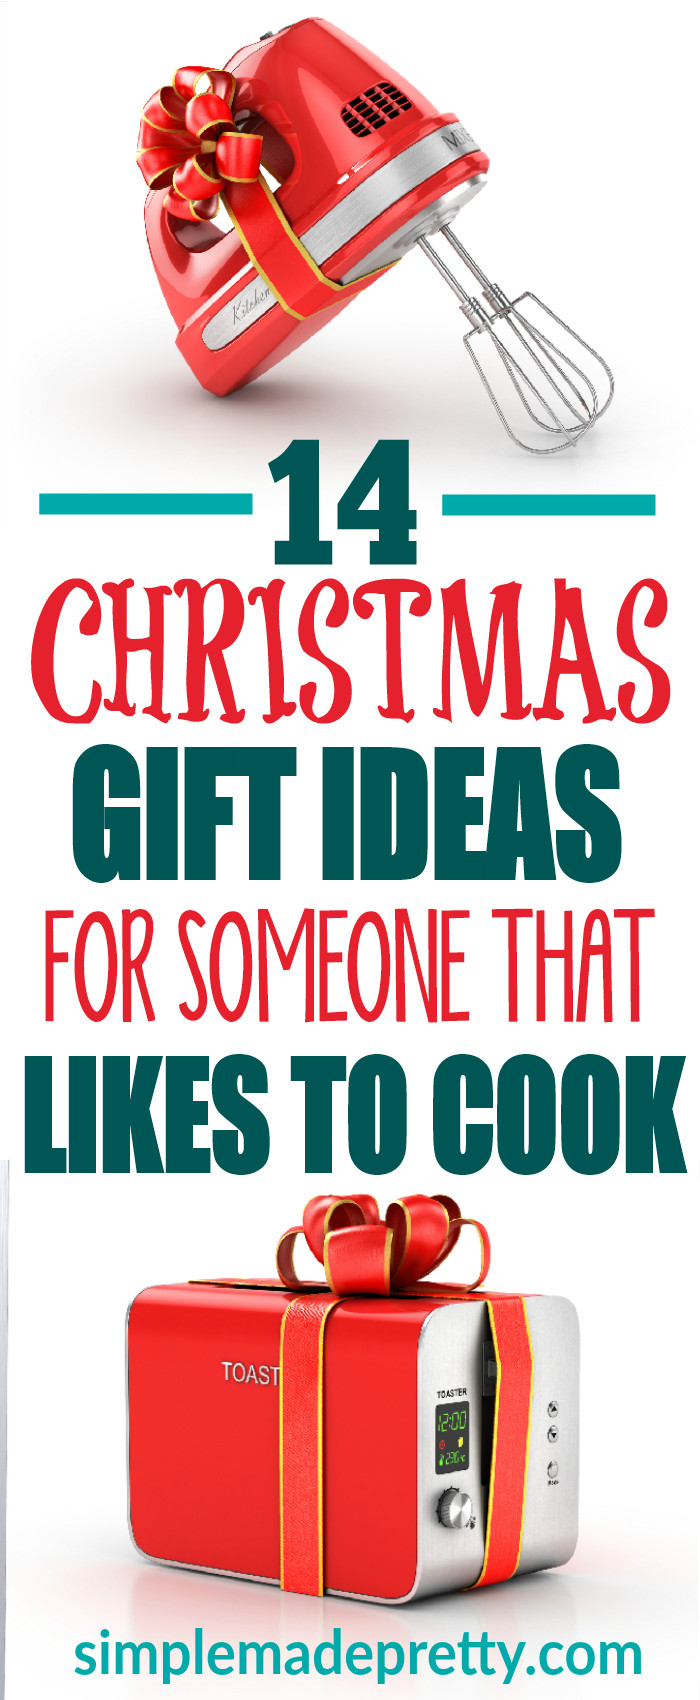 Best ideas about Gift Ideas For Someone Who Likes To Cook . Save or Pin t ideas for someone that likes to cook Simple Made Pretty Now.